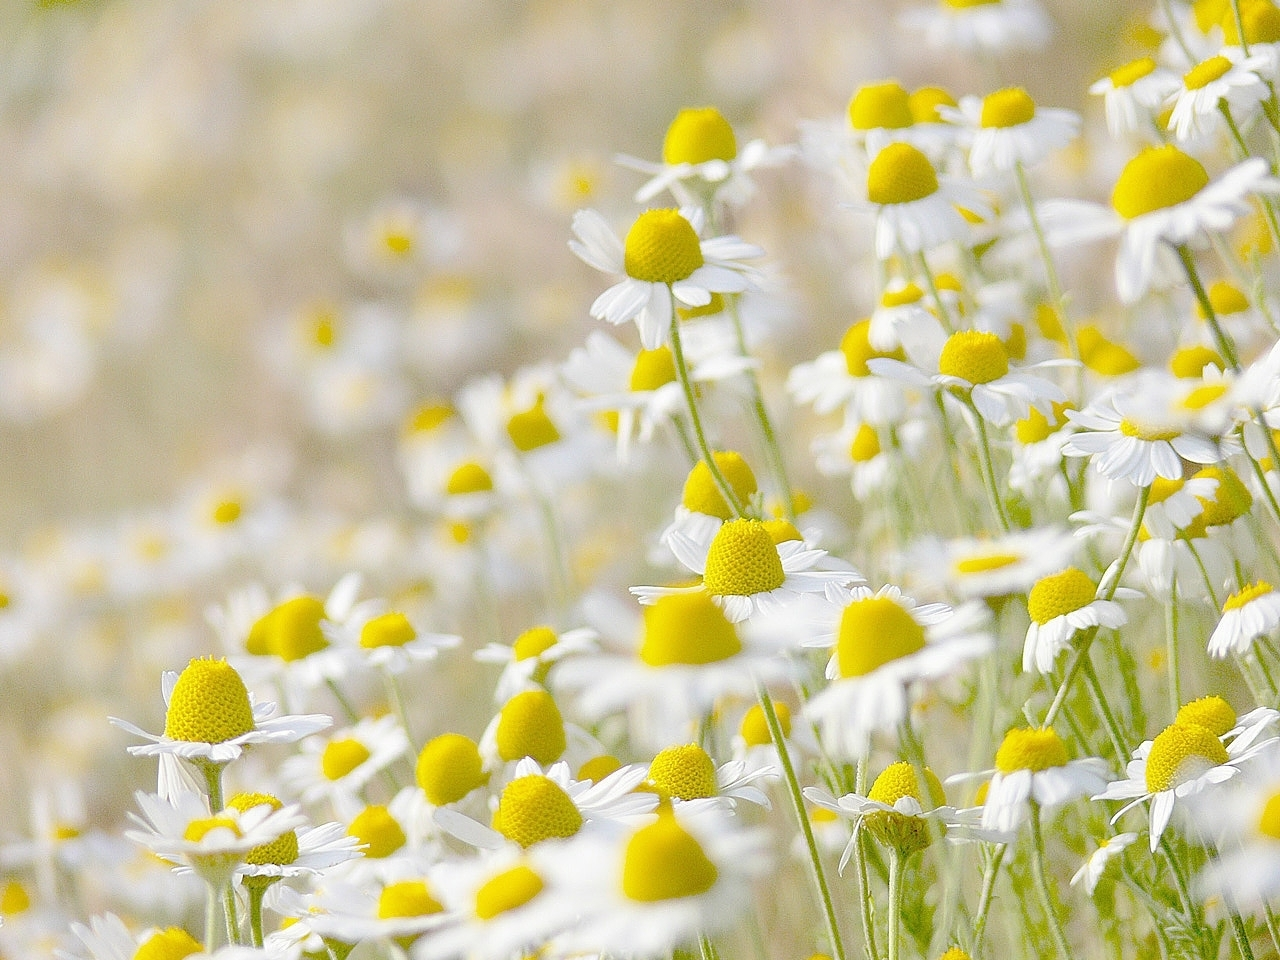 47766 download wallpaper Plants, Flowers, Camomile screensavers and pictures for free